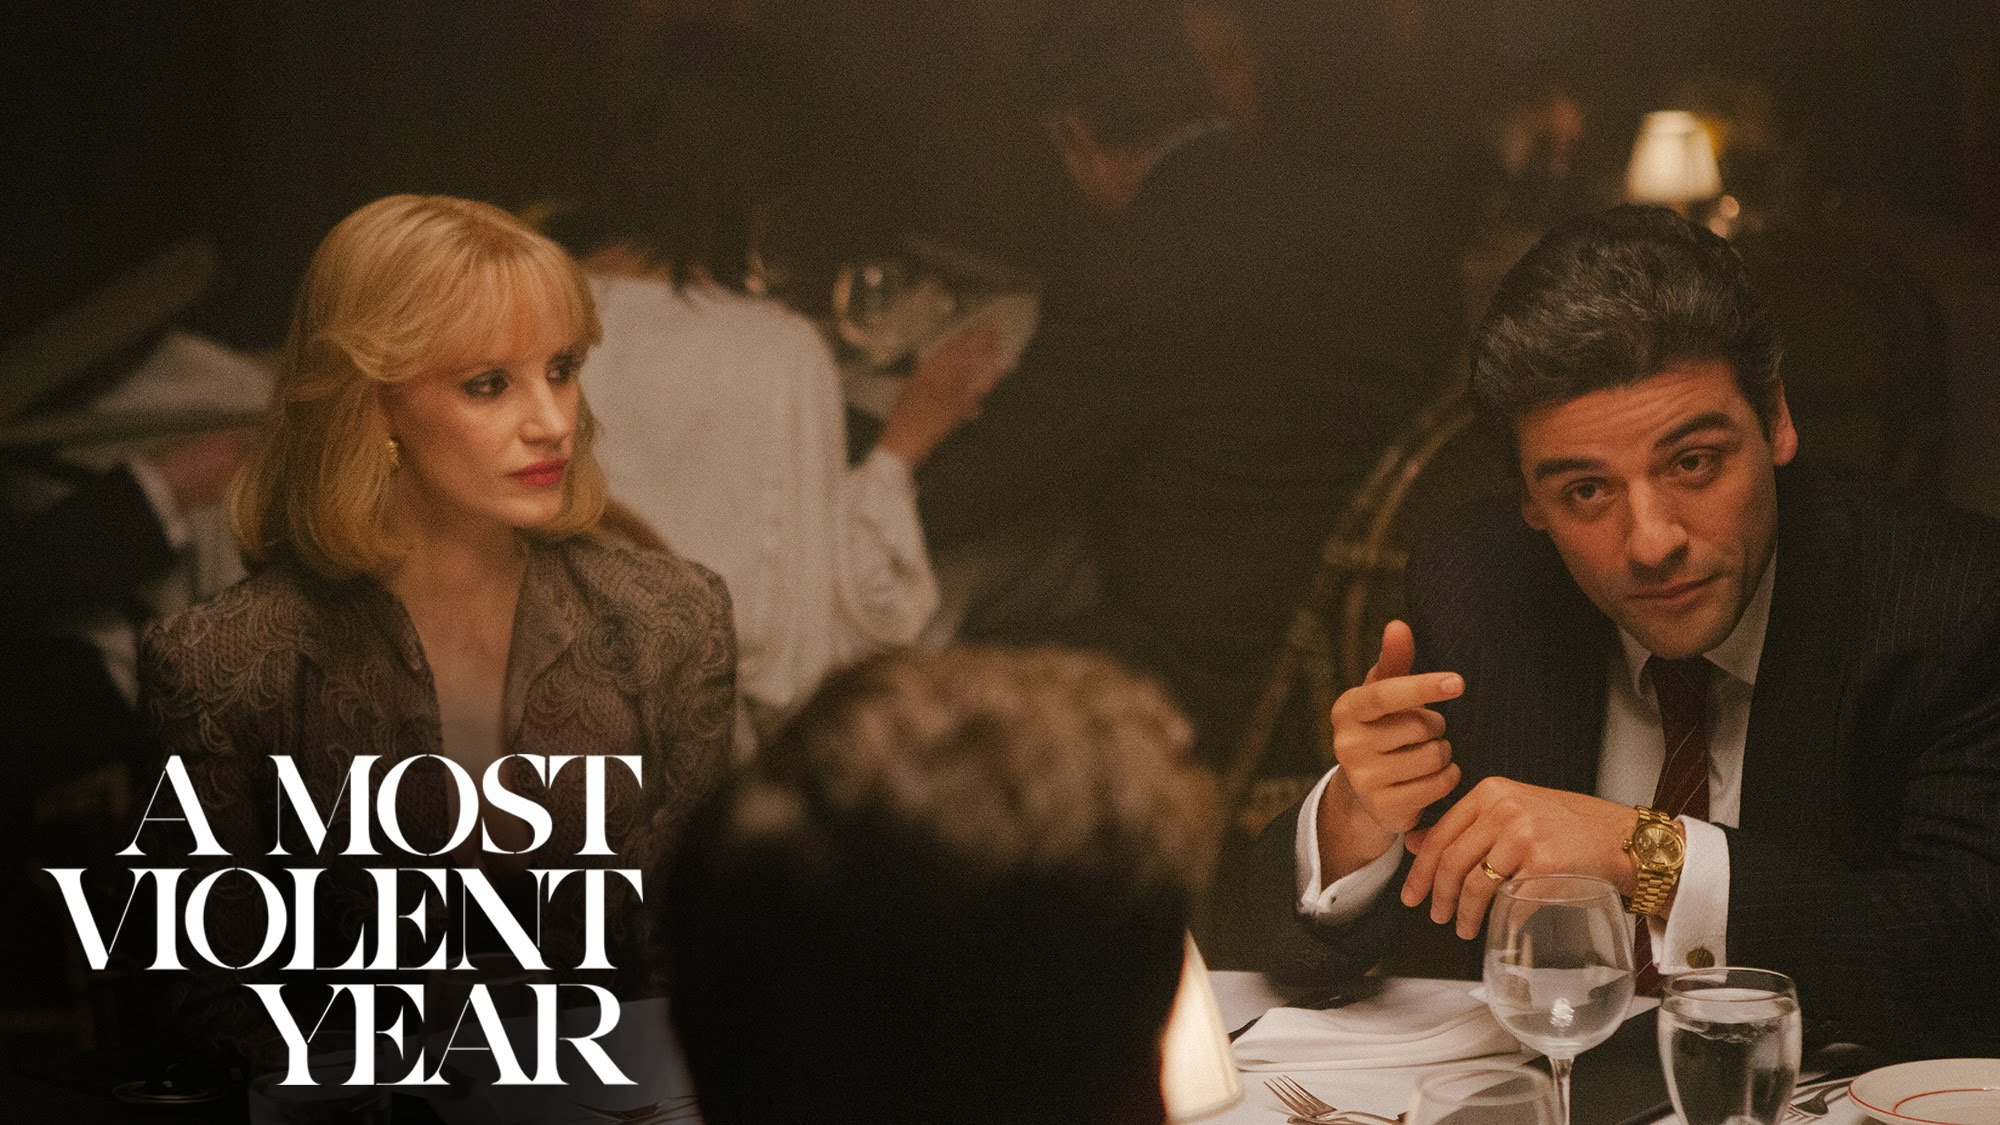 a-most-violent-year-film-2014-oscar-isaac-jessica-chastain-jc-chandor